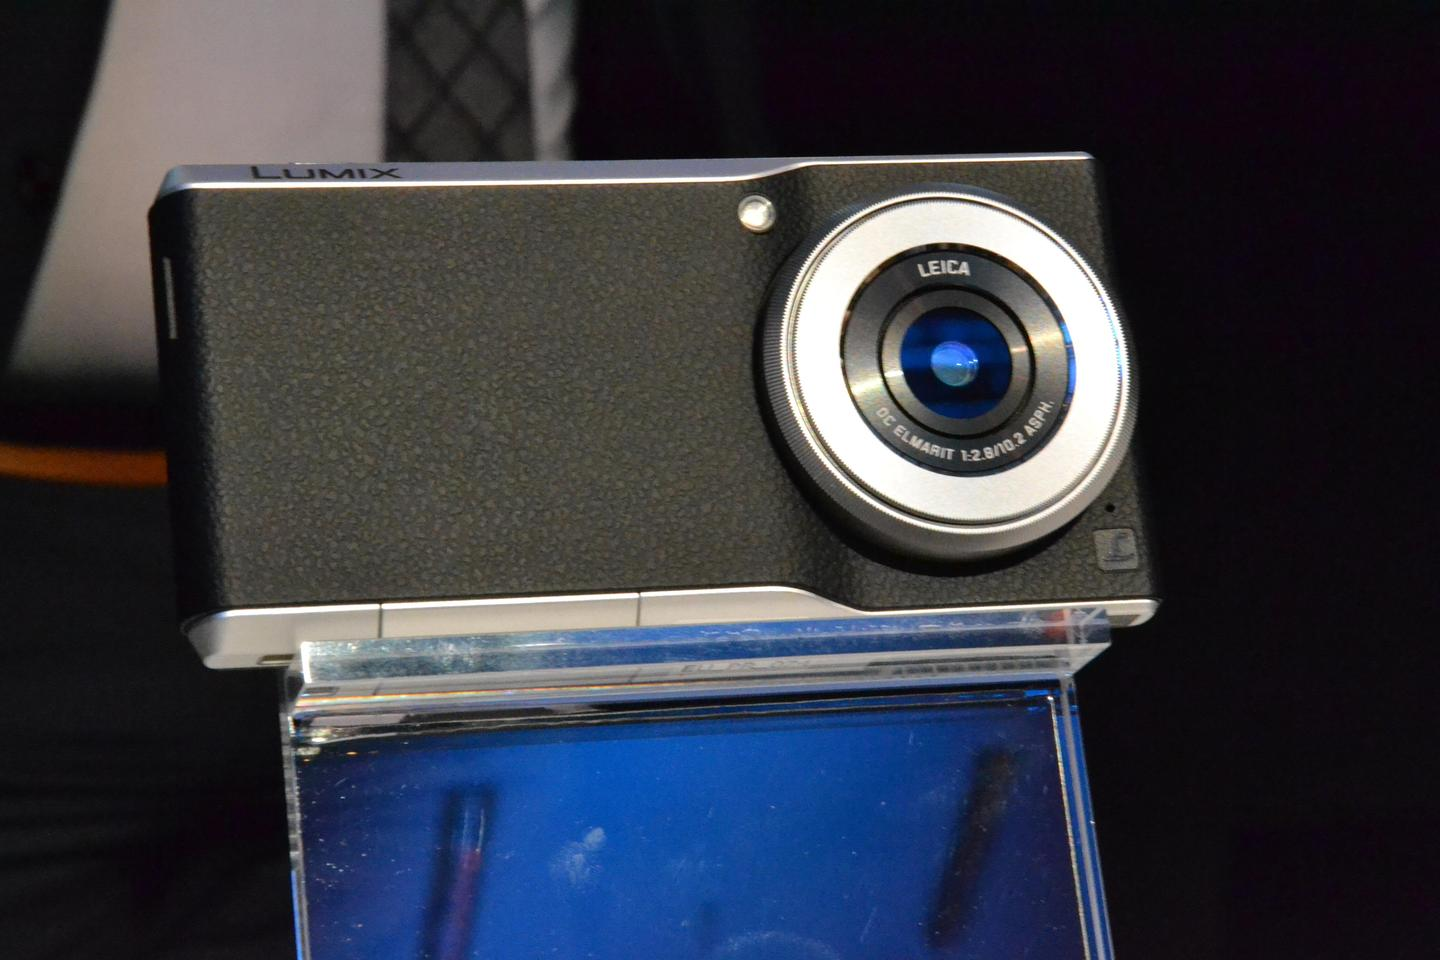 The Panasonic Lumix DMC-CM1 is a smartphone with a one-inch type sensor